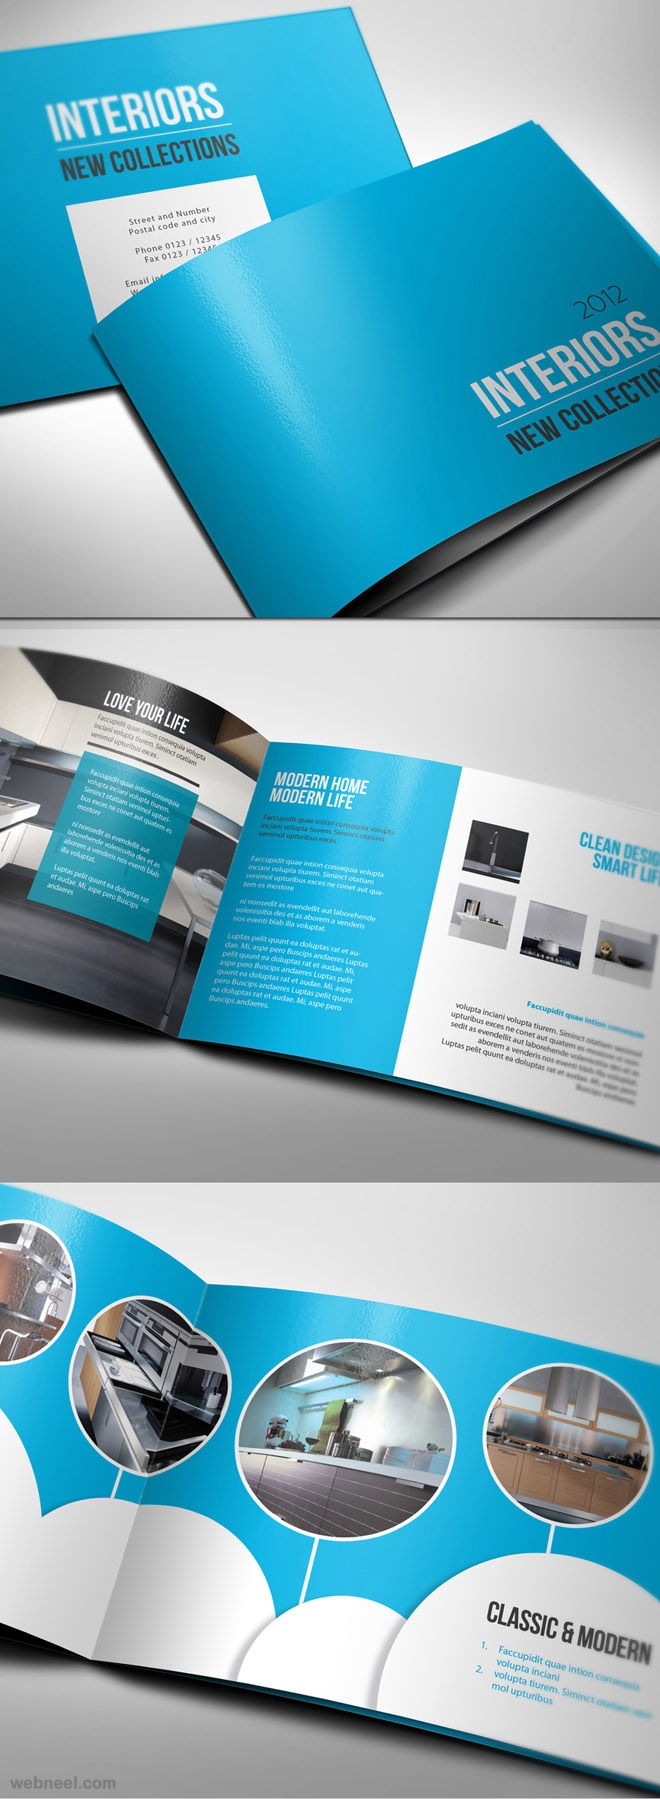 brochure design ideas best brochure design ideas best brochure design